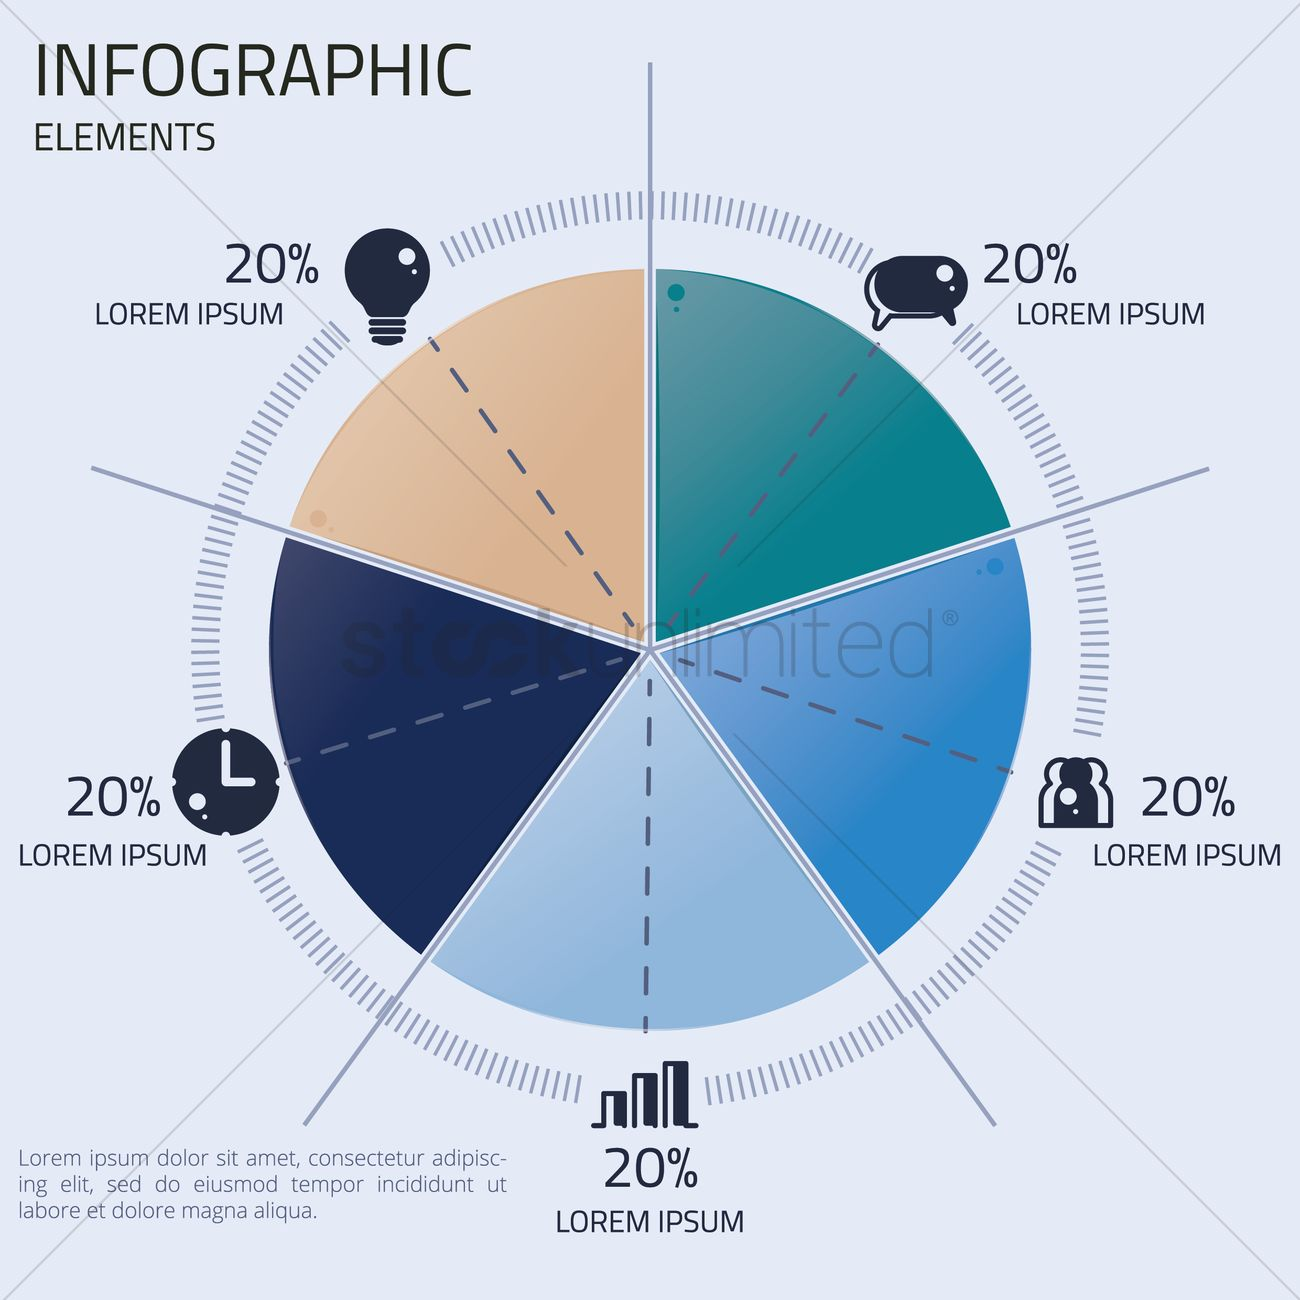 Infographic Pie Chart Design Vector Image 2000173 Stockunlimited